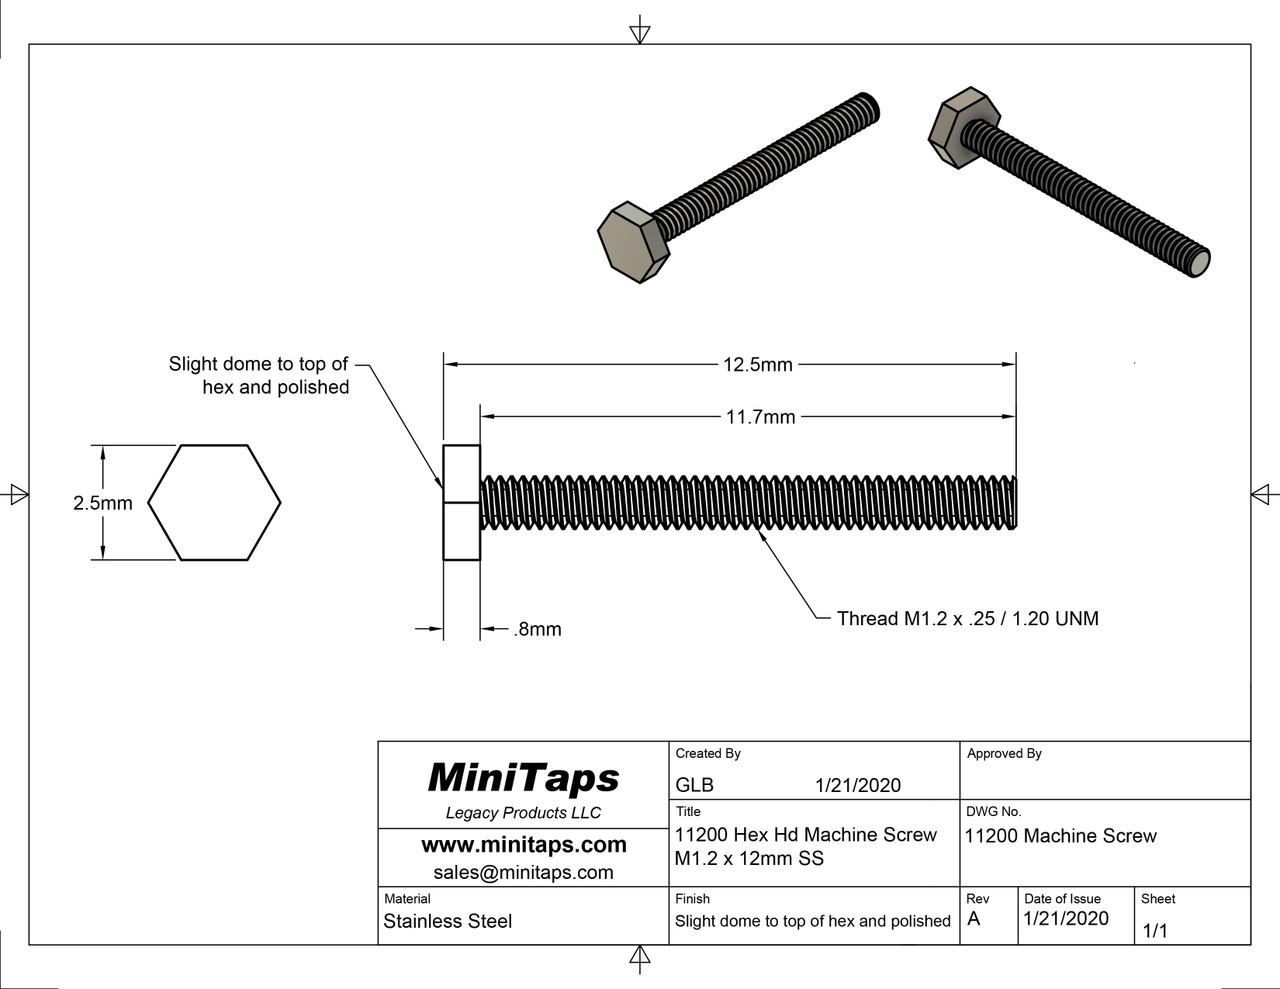 """Machine Screw Hex Head  Thread M1.2 (1.2UNM,) Pitch .25mm, Head (ACF) measurement 2.5mm, Threaded Shank Length 11.7mm, Overall Length 12.5mm  Material Stainless Steel  Finish Color Natural Stainless Steel """"Silver"""" and Polished  The screw head has a slight doom and is polished.     Price is for 100 count package with bulk pricing available. Please contact sales@minitaps.com for bulk pricing pricing or any additional questions or information."""